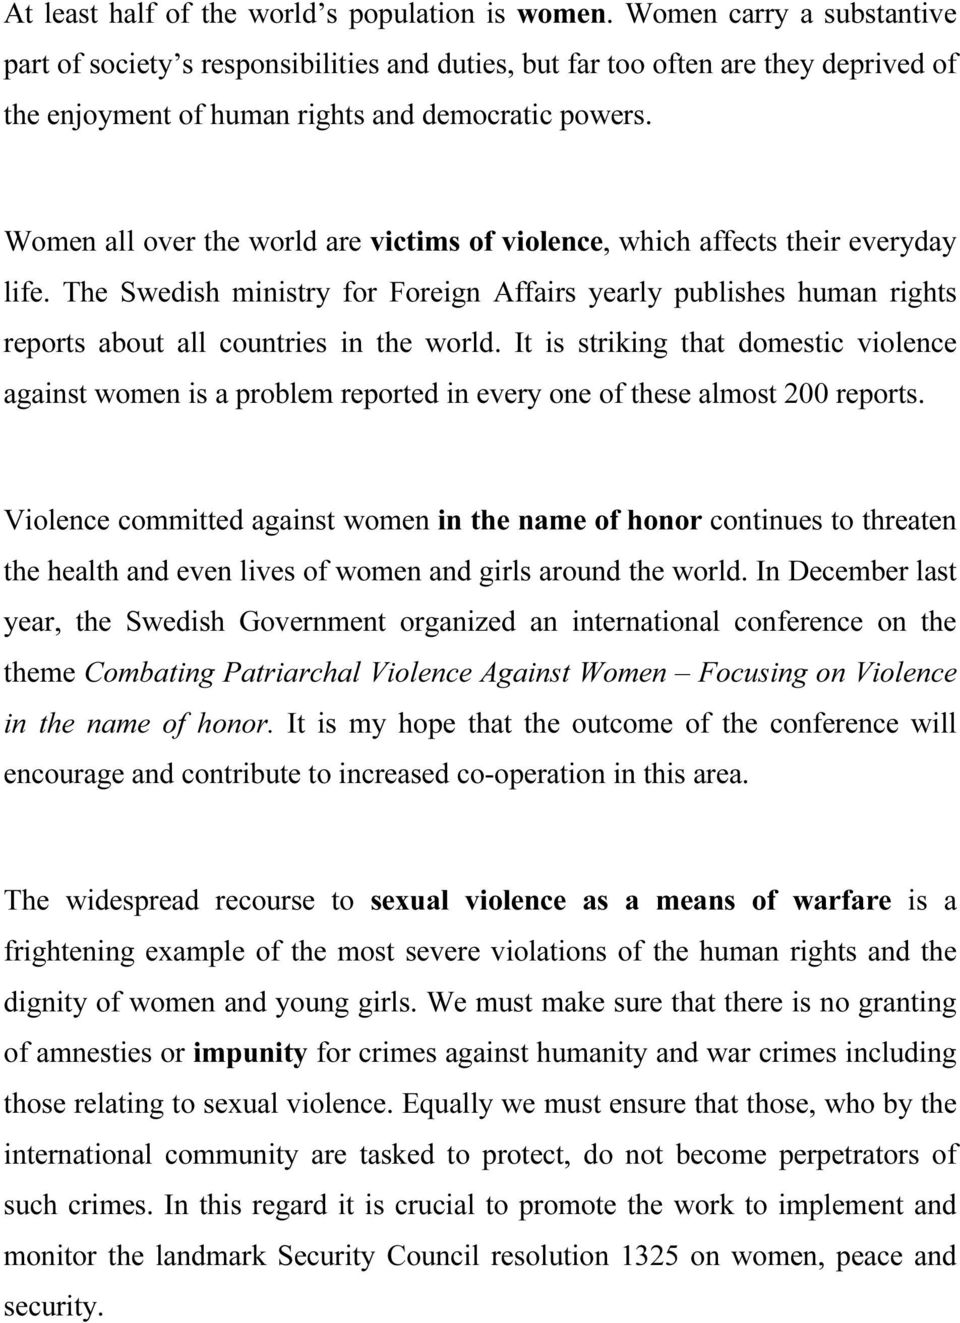 Women all over the world are victims of violence, which affects their everyday life. The Swedish ministry for Foreign Affairs yearly publishes human rights reports about all countries in the world.